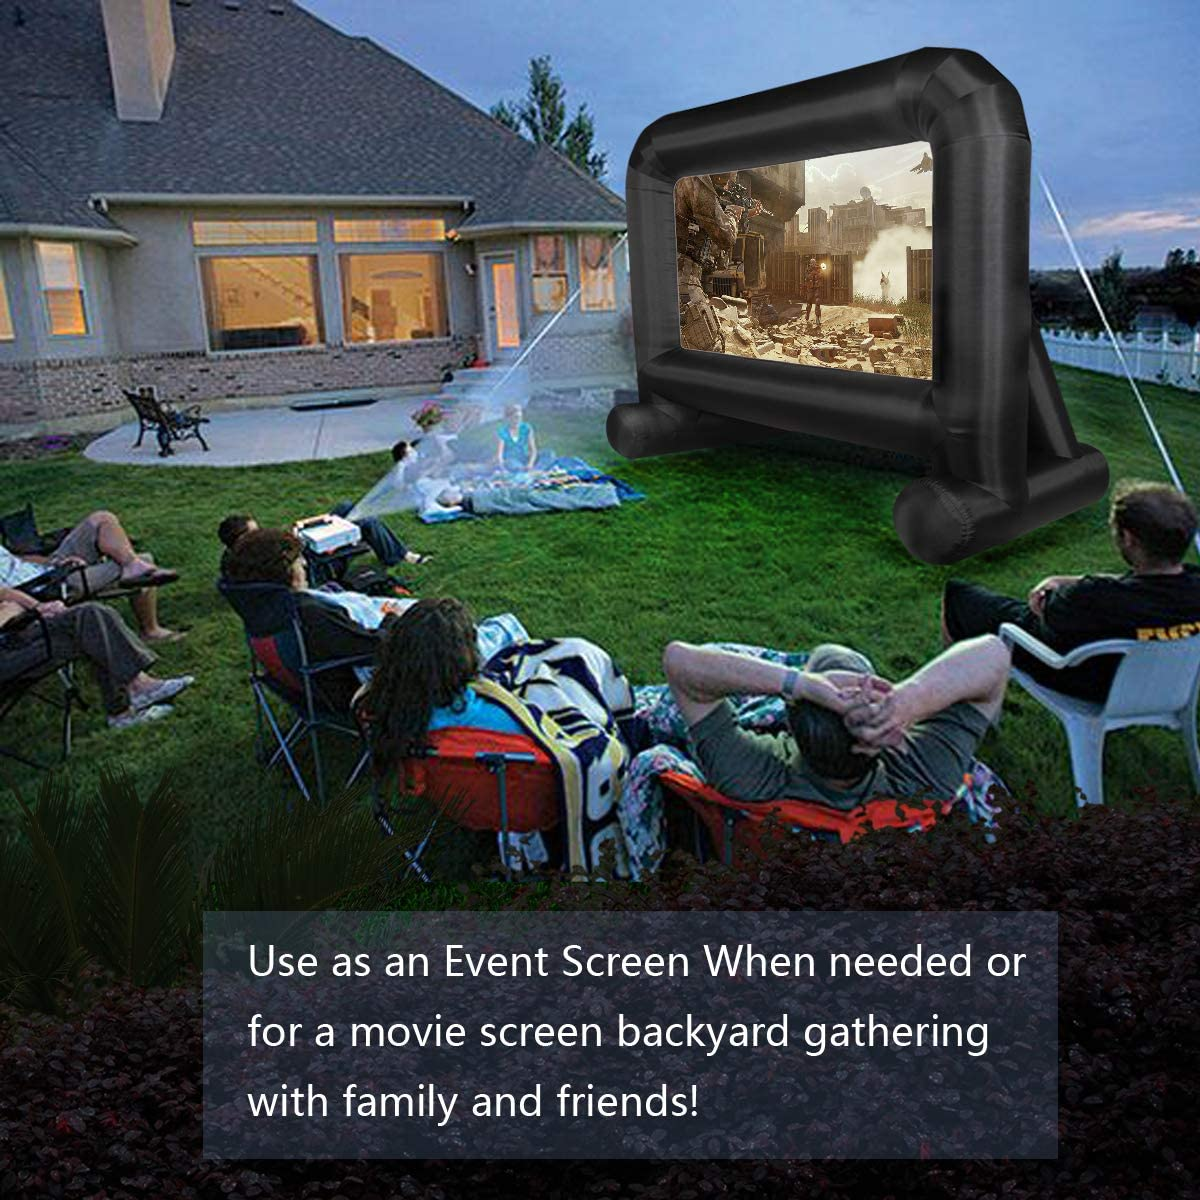 Inflatable Movie Screen Outdoor, OUTTOY Inflatable Projection Screen with Quiet Fan and Storage Bag, Easy Set up, Mega Blow Up Screen for Backyard Movie Night, Theme Parties, Celebrations-16FT